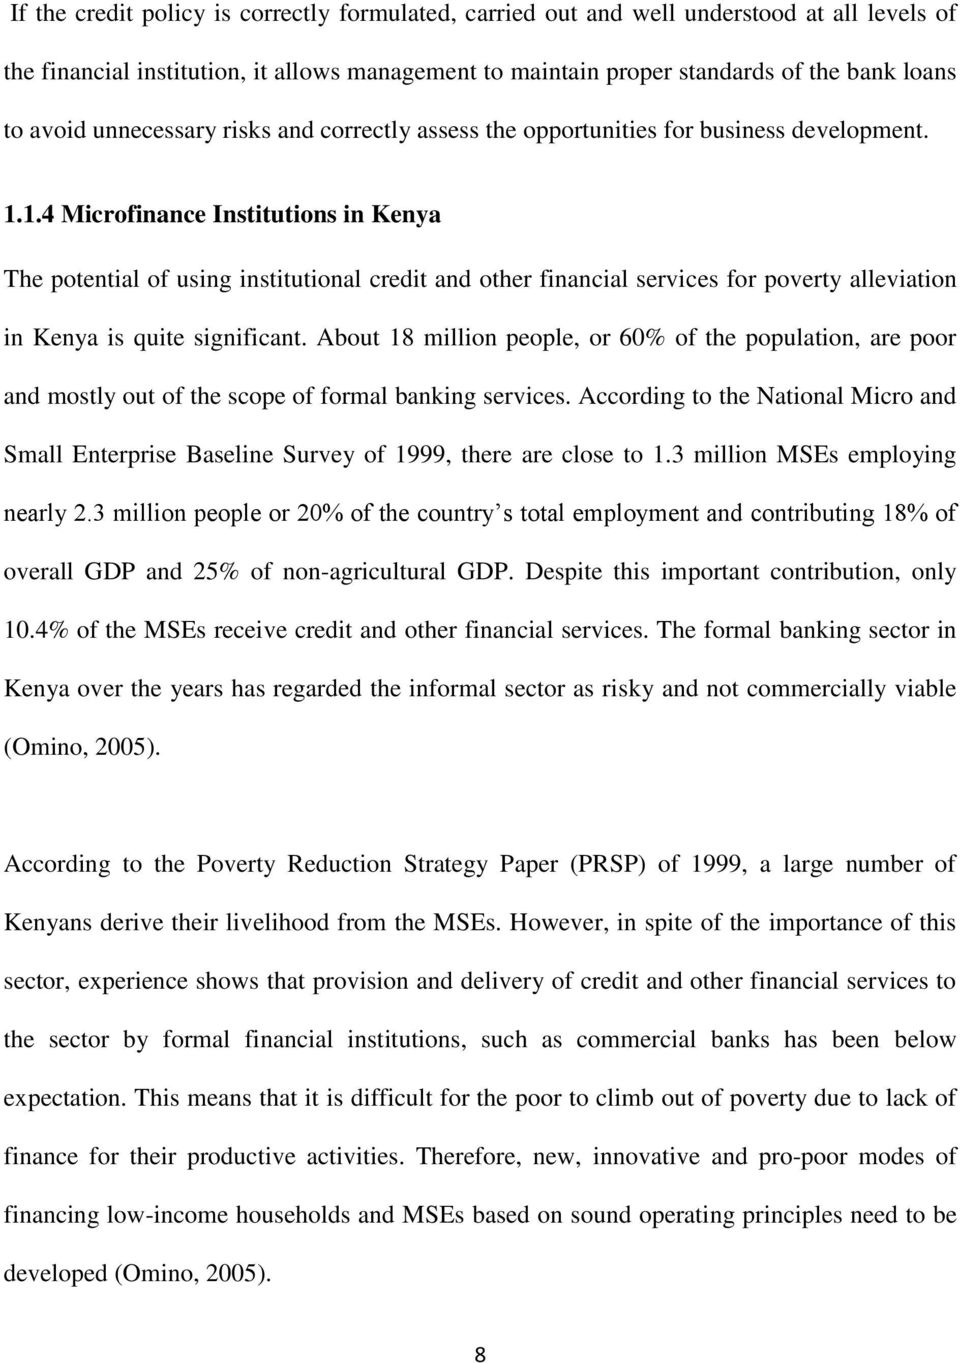 1.4 Microfinance Institutions in Kenya The potential of using institutional credit and other financial services for poverty alleviation in Kenya is quite significant.